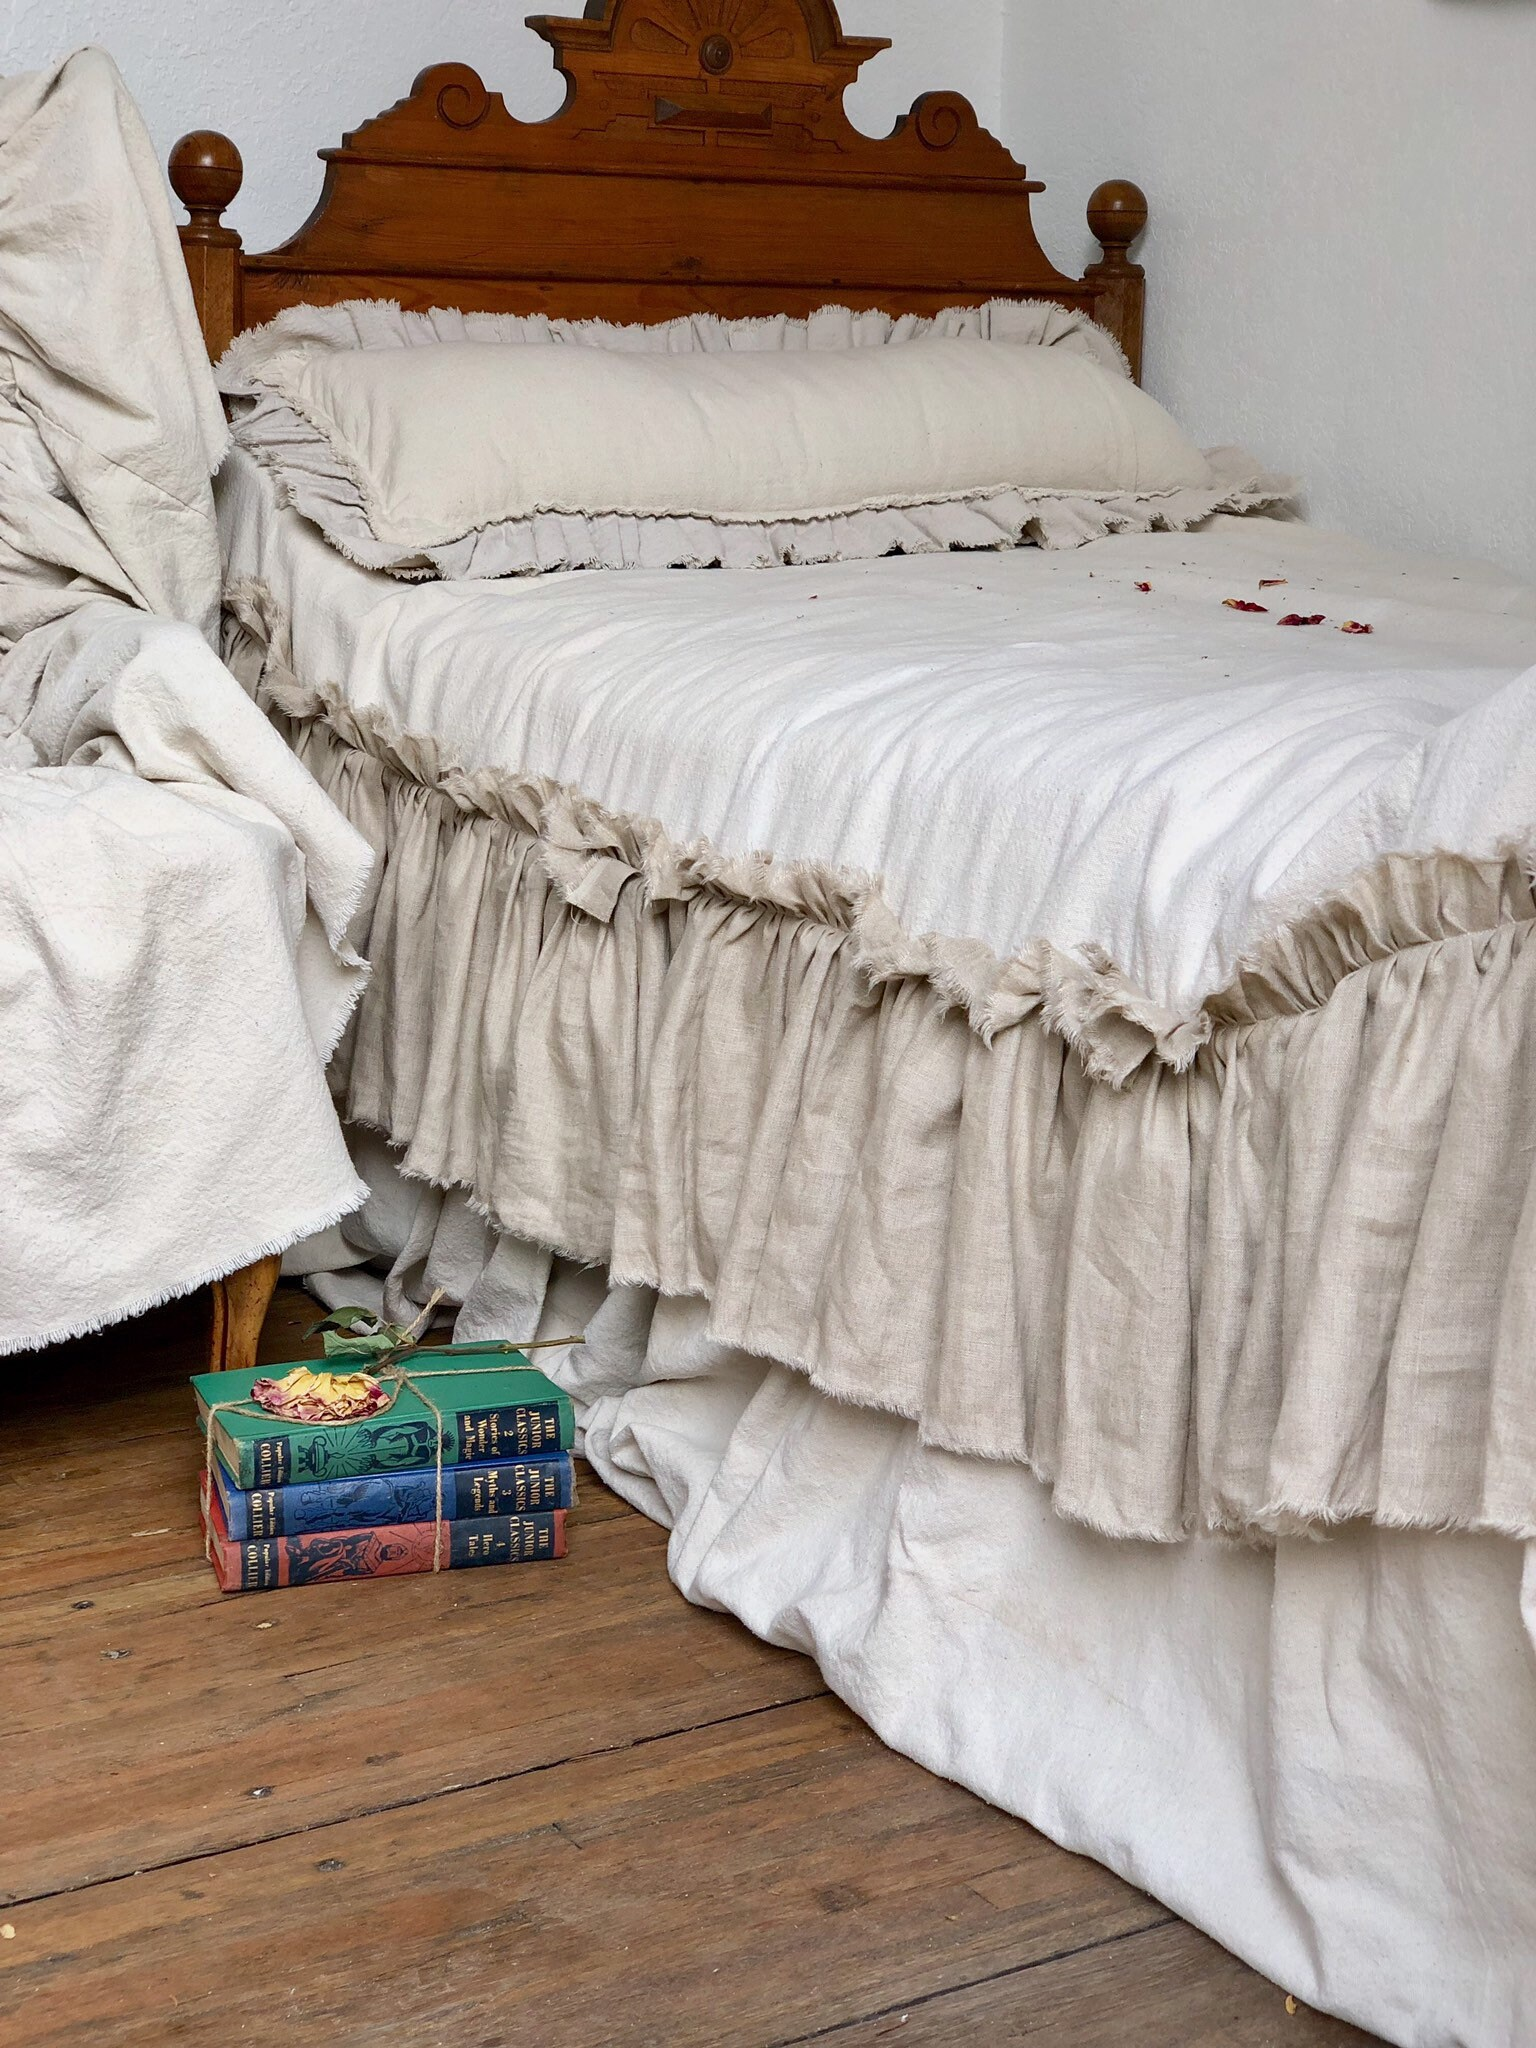 Canvas Linen Custom Bed Cover, Bedspread, Skirted Coverlet,Ivory White  Beige With Ruffles Dust Ruffles Farmhouse Shabby Chic French County